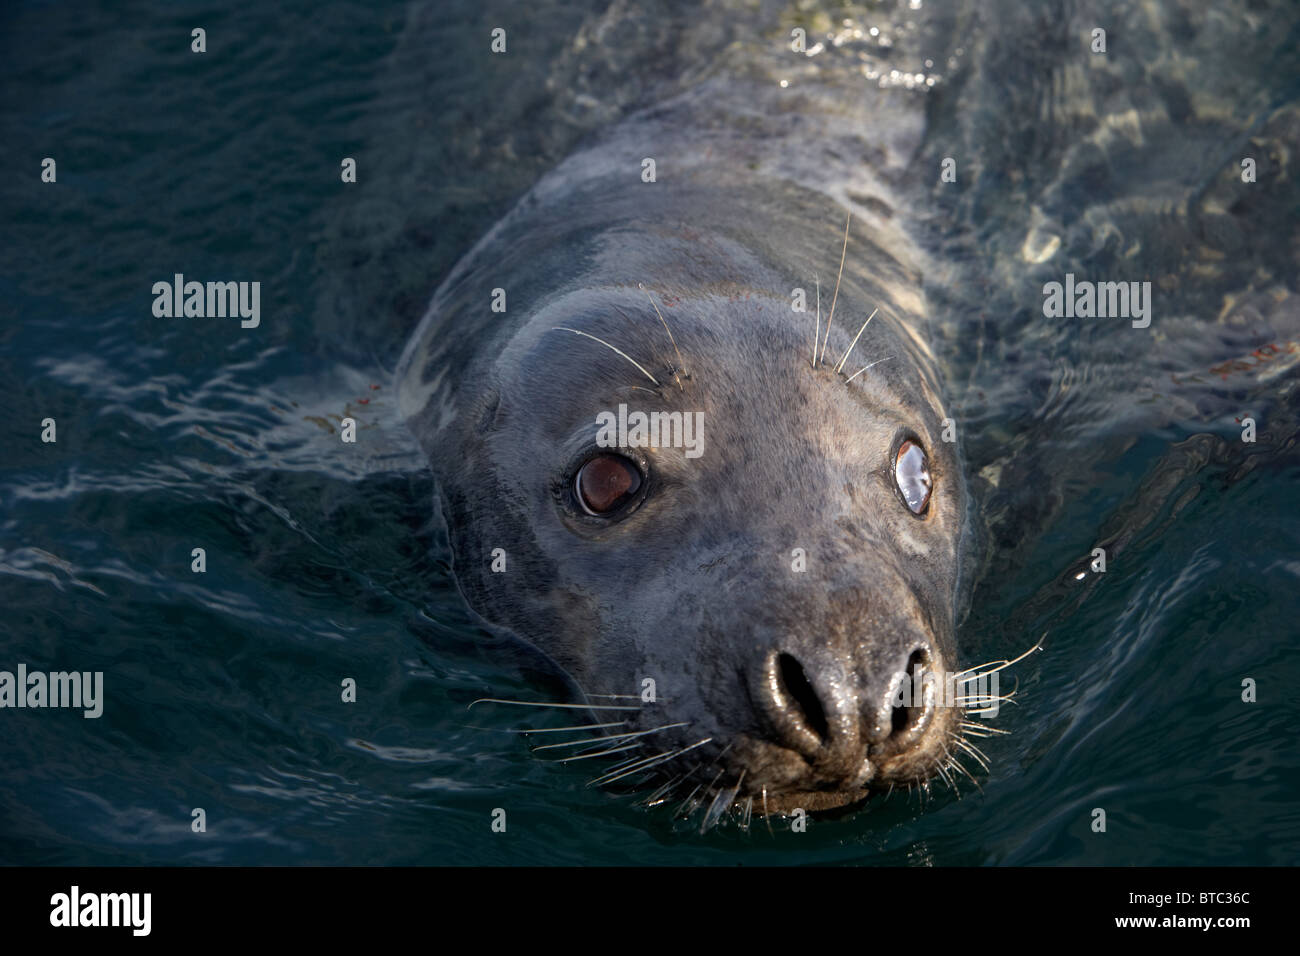 large grey seal Halichoerus grypus with damaged cloudy eye swimming in clear water in northern ireland uk Stock Photo